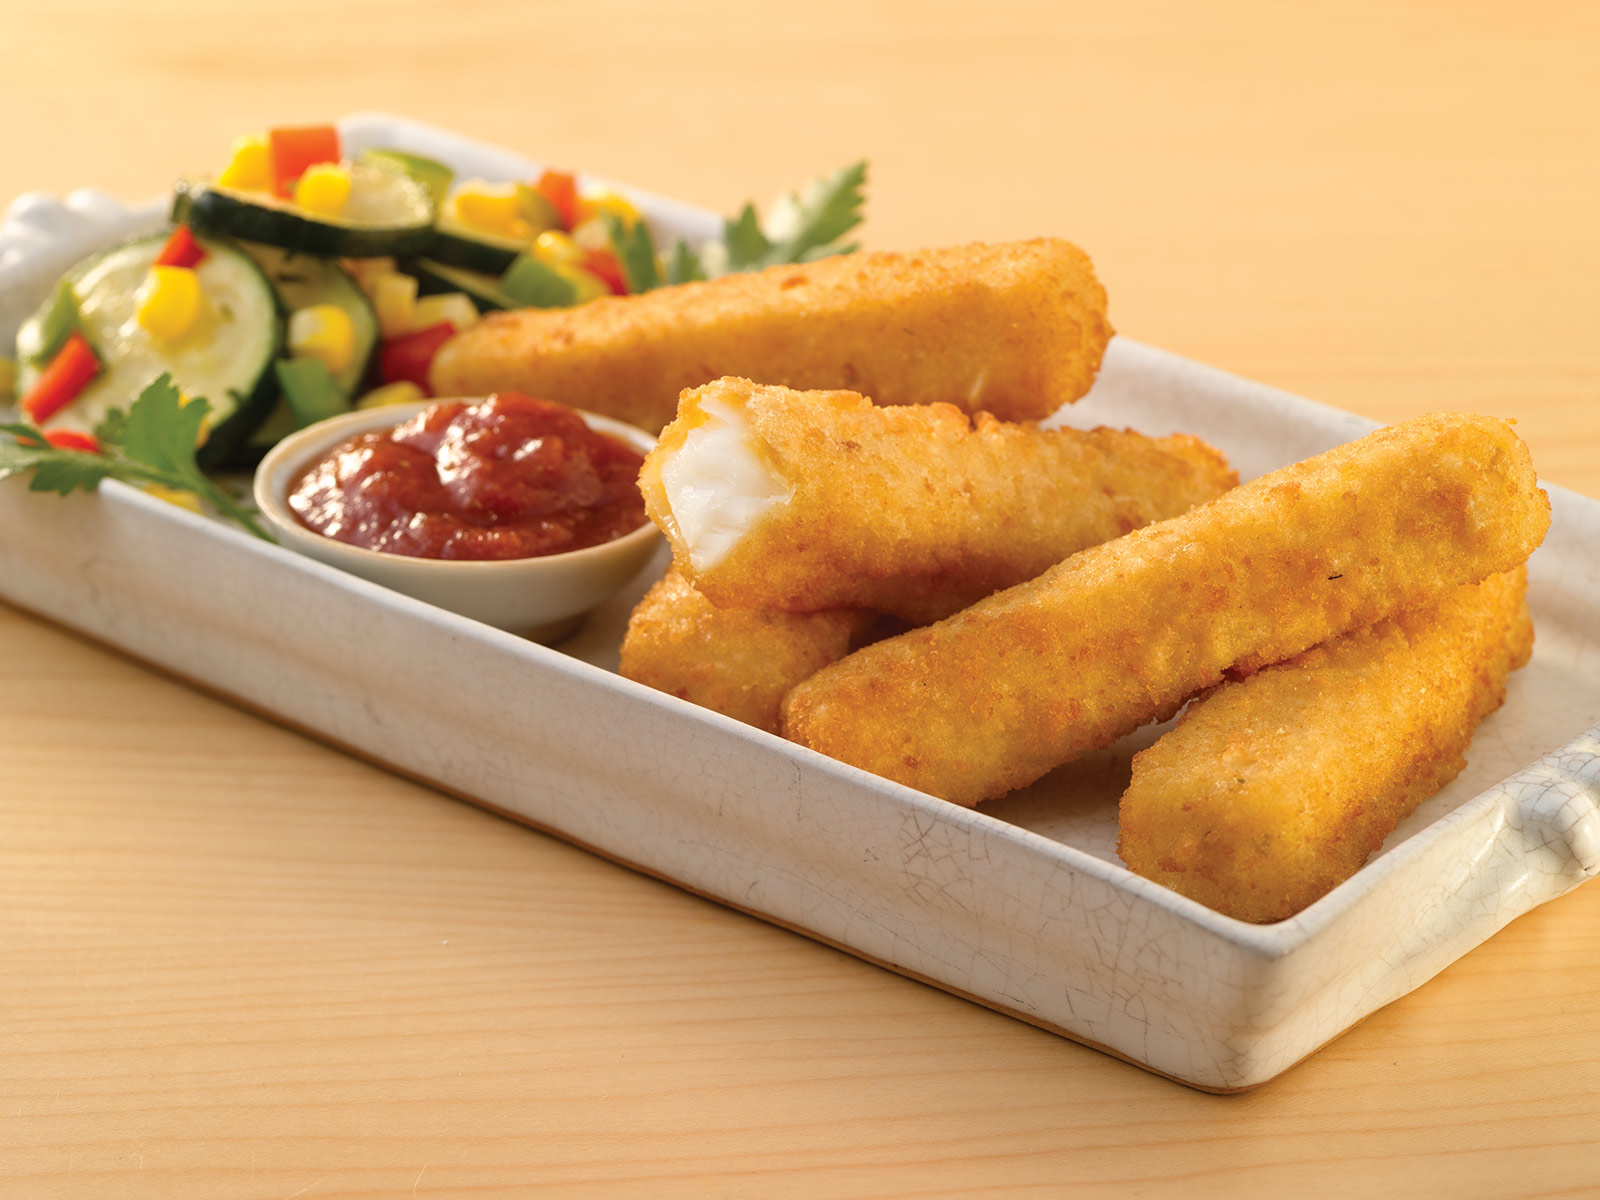 The Ultimate Fish Stick™ 1 oz All Natural, Oven Ready 418944